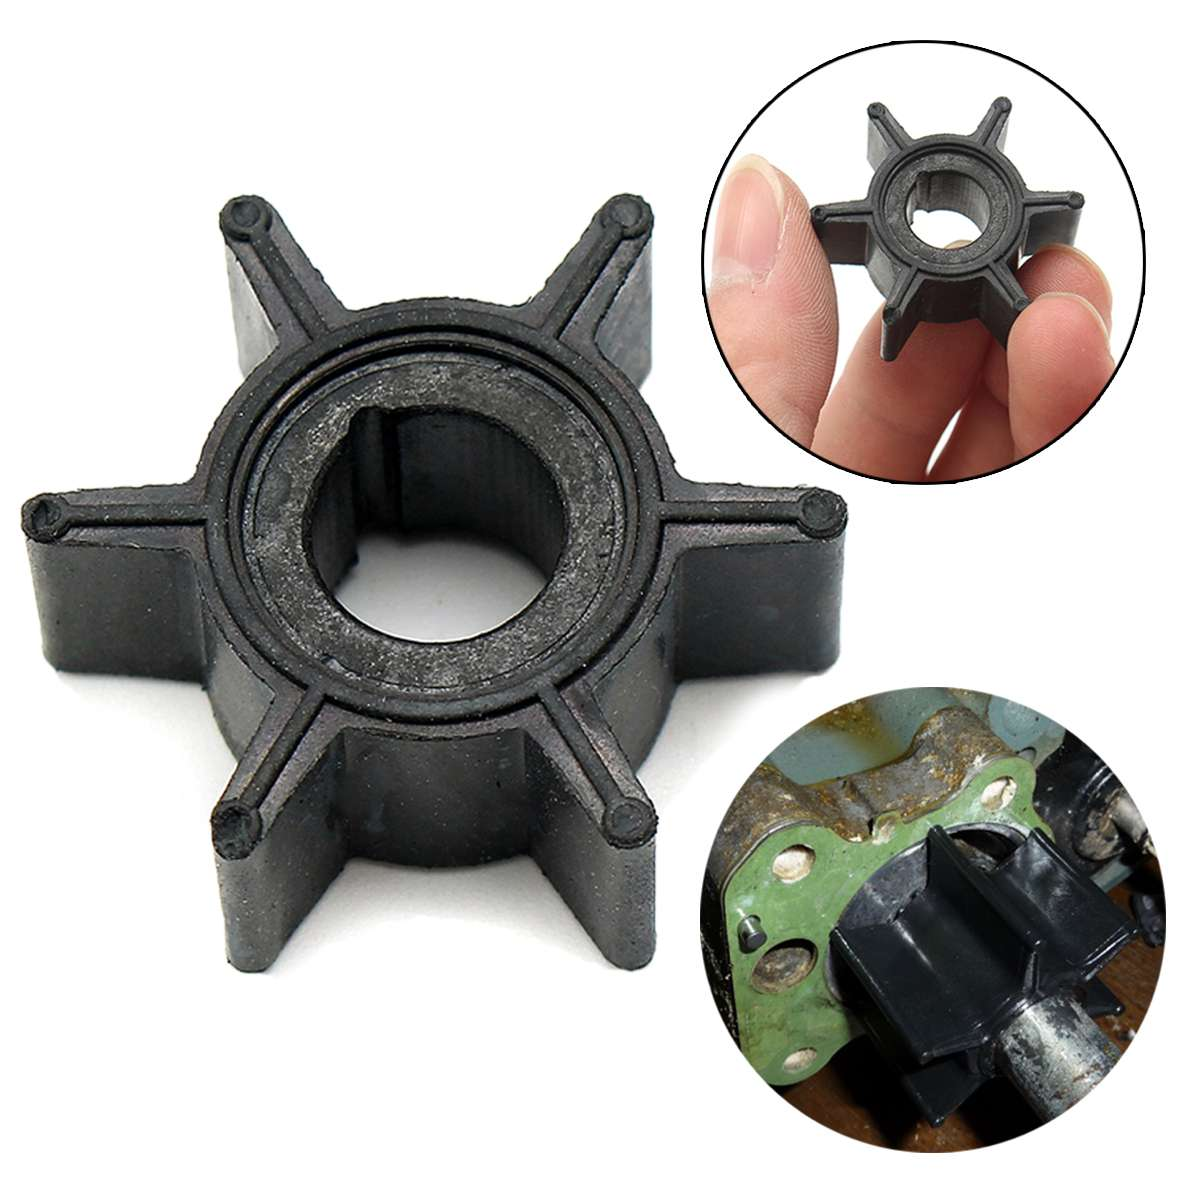 Water Pump Impeller For Tohatsu/Mercury/Sierra 2/2.5/3.5/4/5/6HP Outboard Motor 6 Blades Boat Parts & Accessories Black Rubber